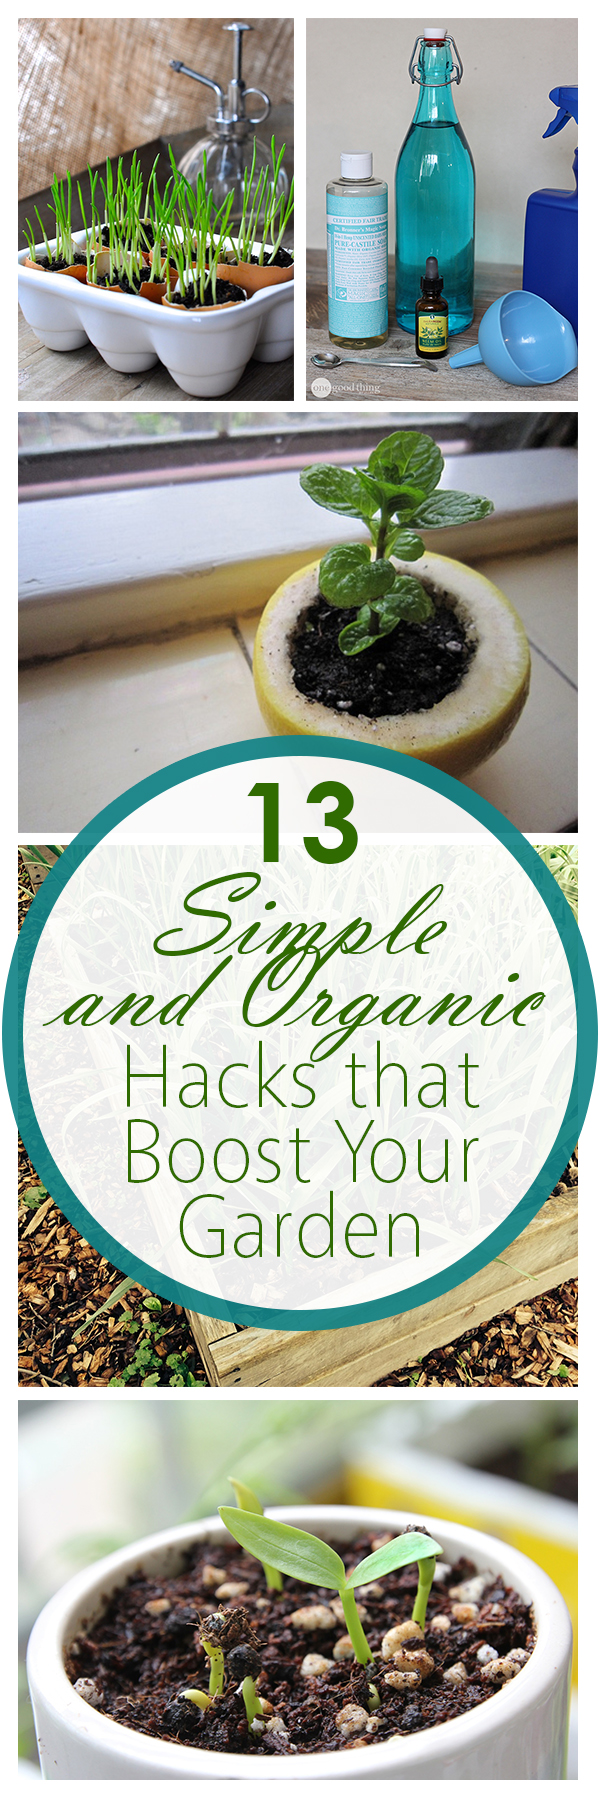 13 Simple and Organic Hacks that Boost Your Garden